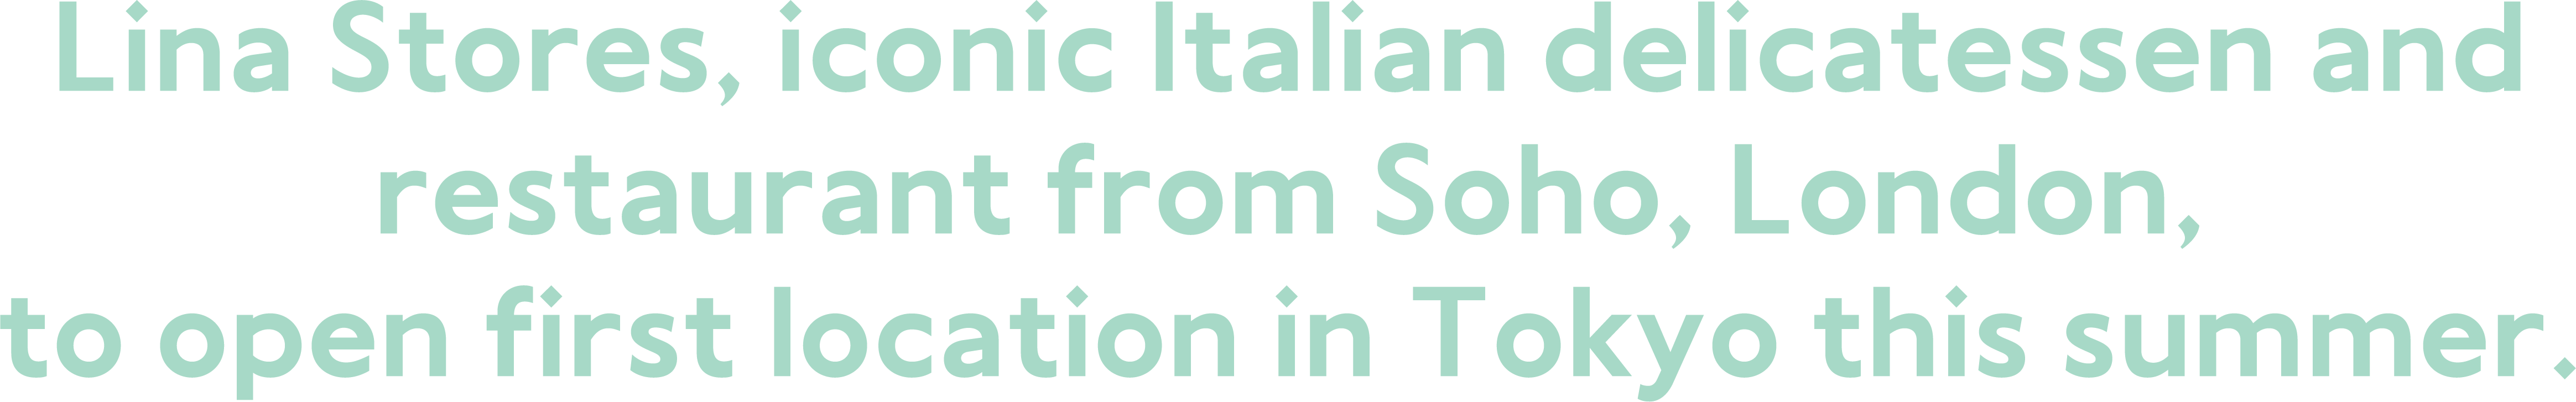 Lina sotres iconic italian delicatessen and restaurant from Soho, London. to open first location in Tokyo in summer.